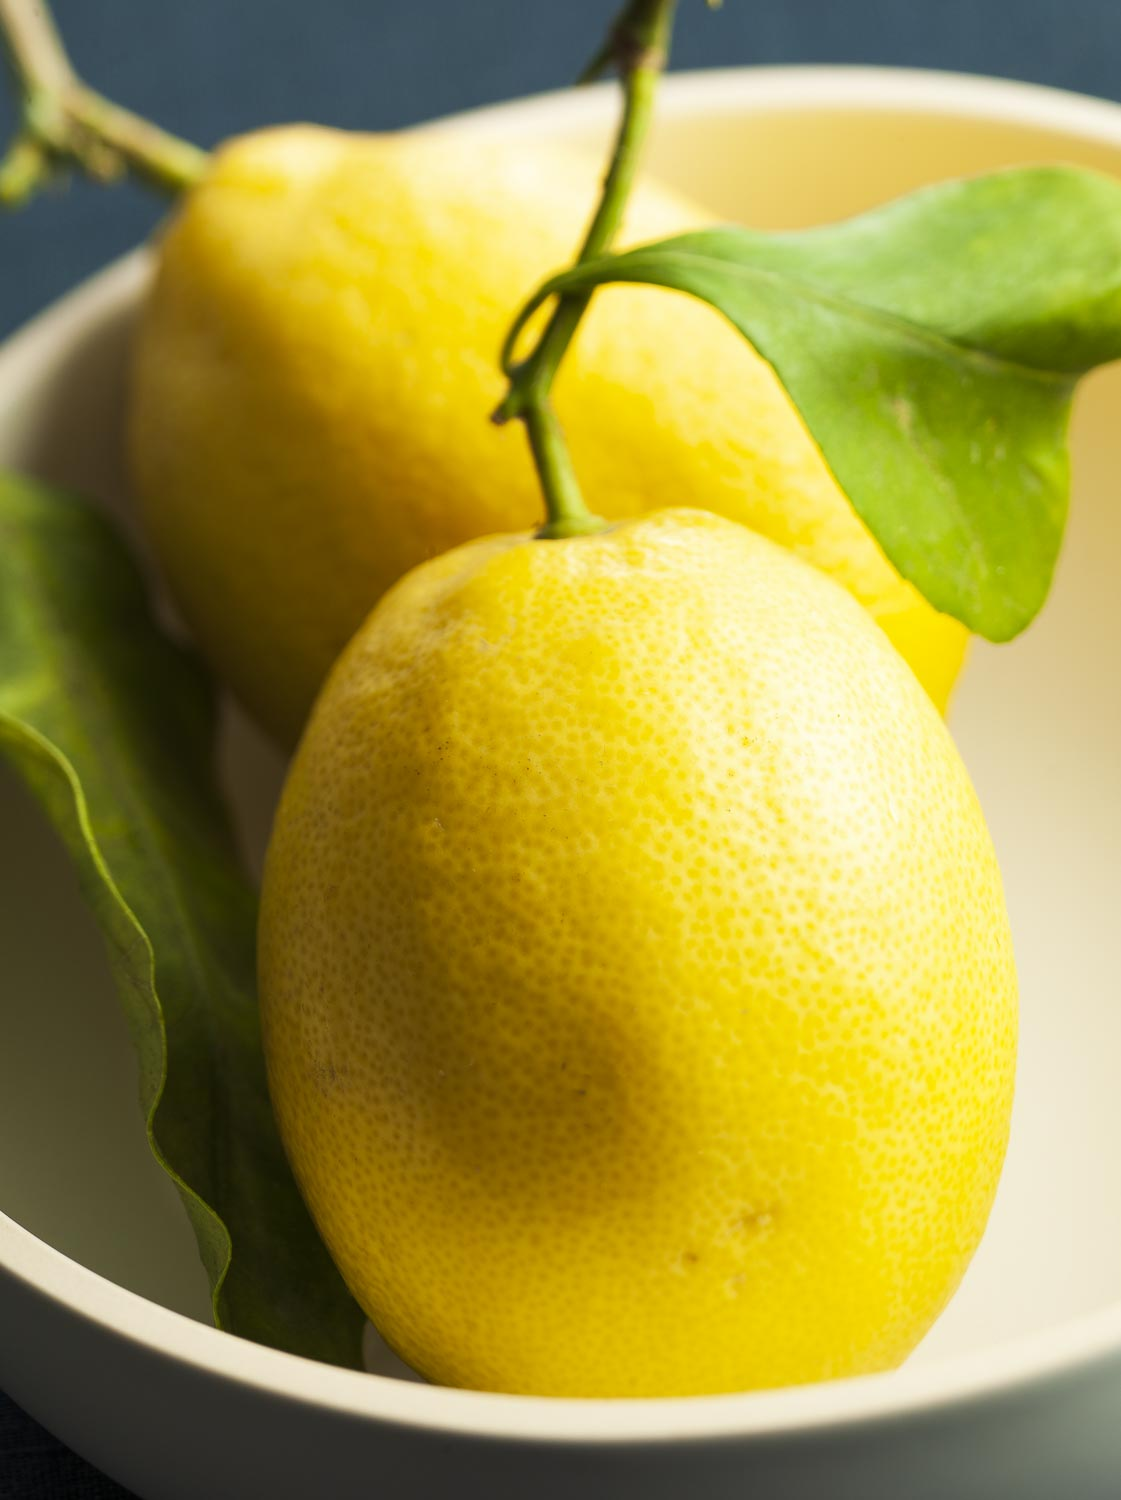 Laurent Grivet, photographie culinaire - citrons